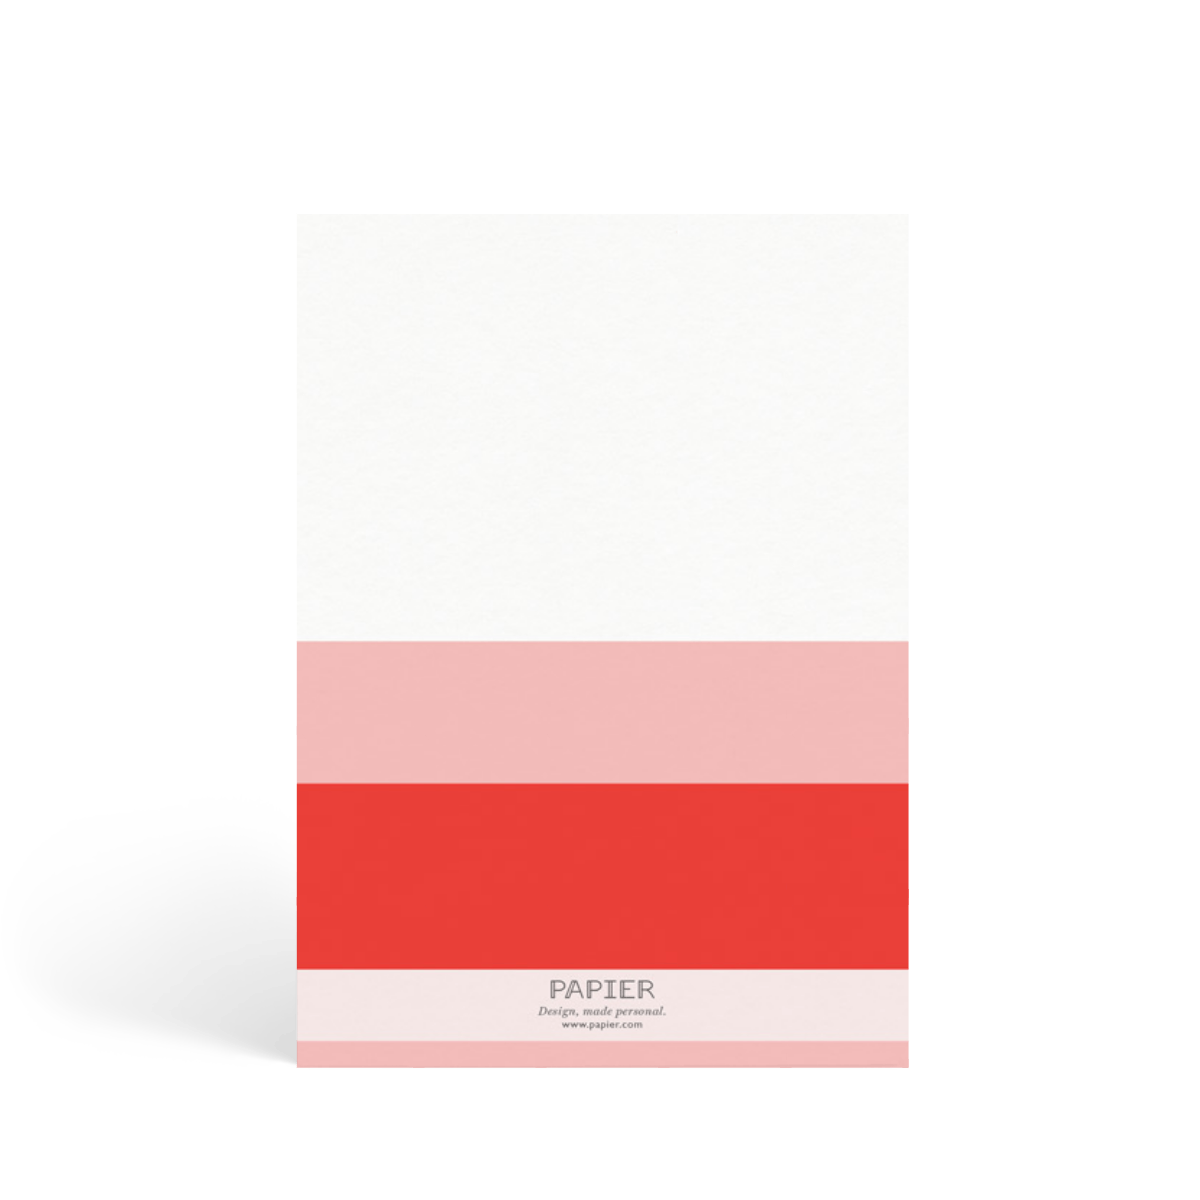 Https%3a%2f%2fwww.papier.com%2fproduct image%2f51880%2f5%2fstriped colourblock pink red 12687 back 1541002641.png?ixlib=rb 1.1